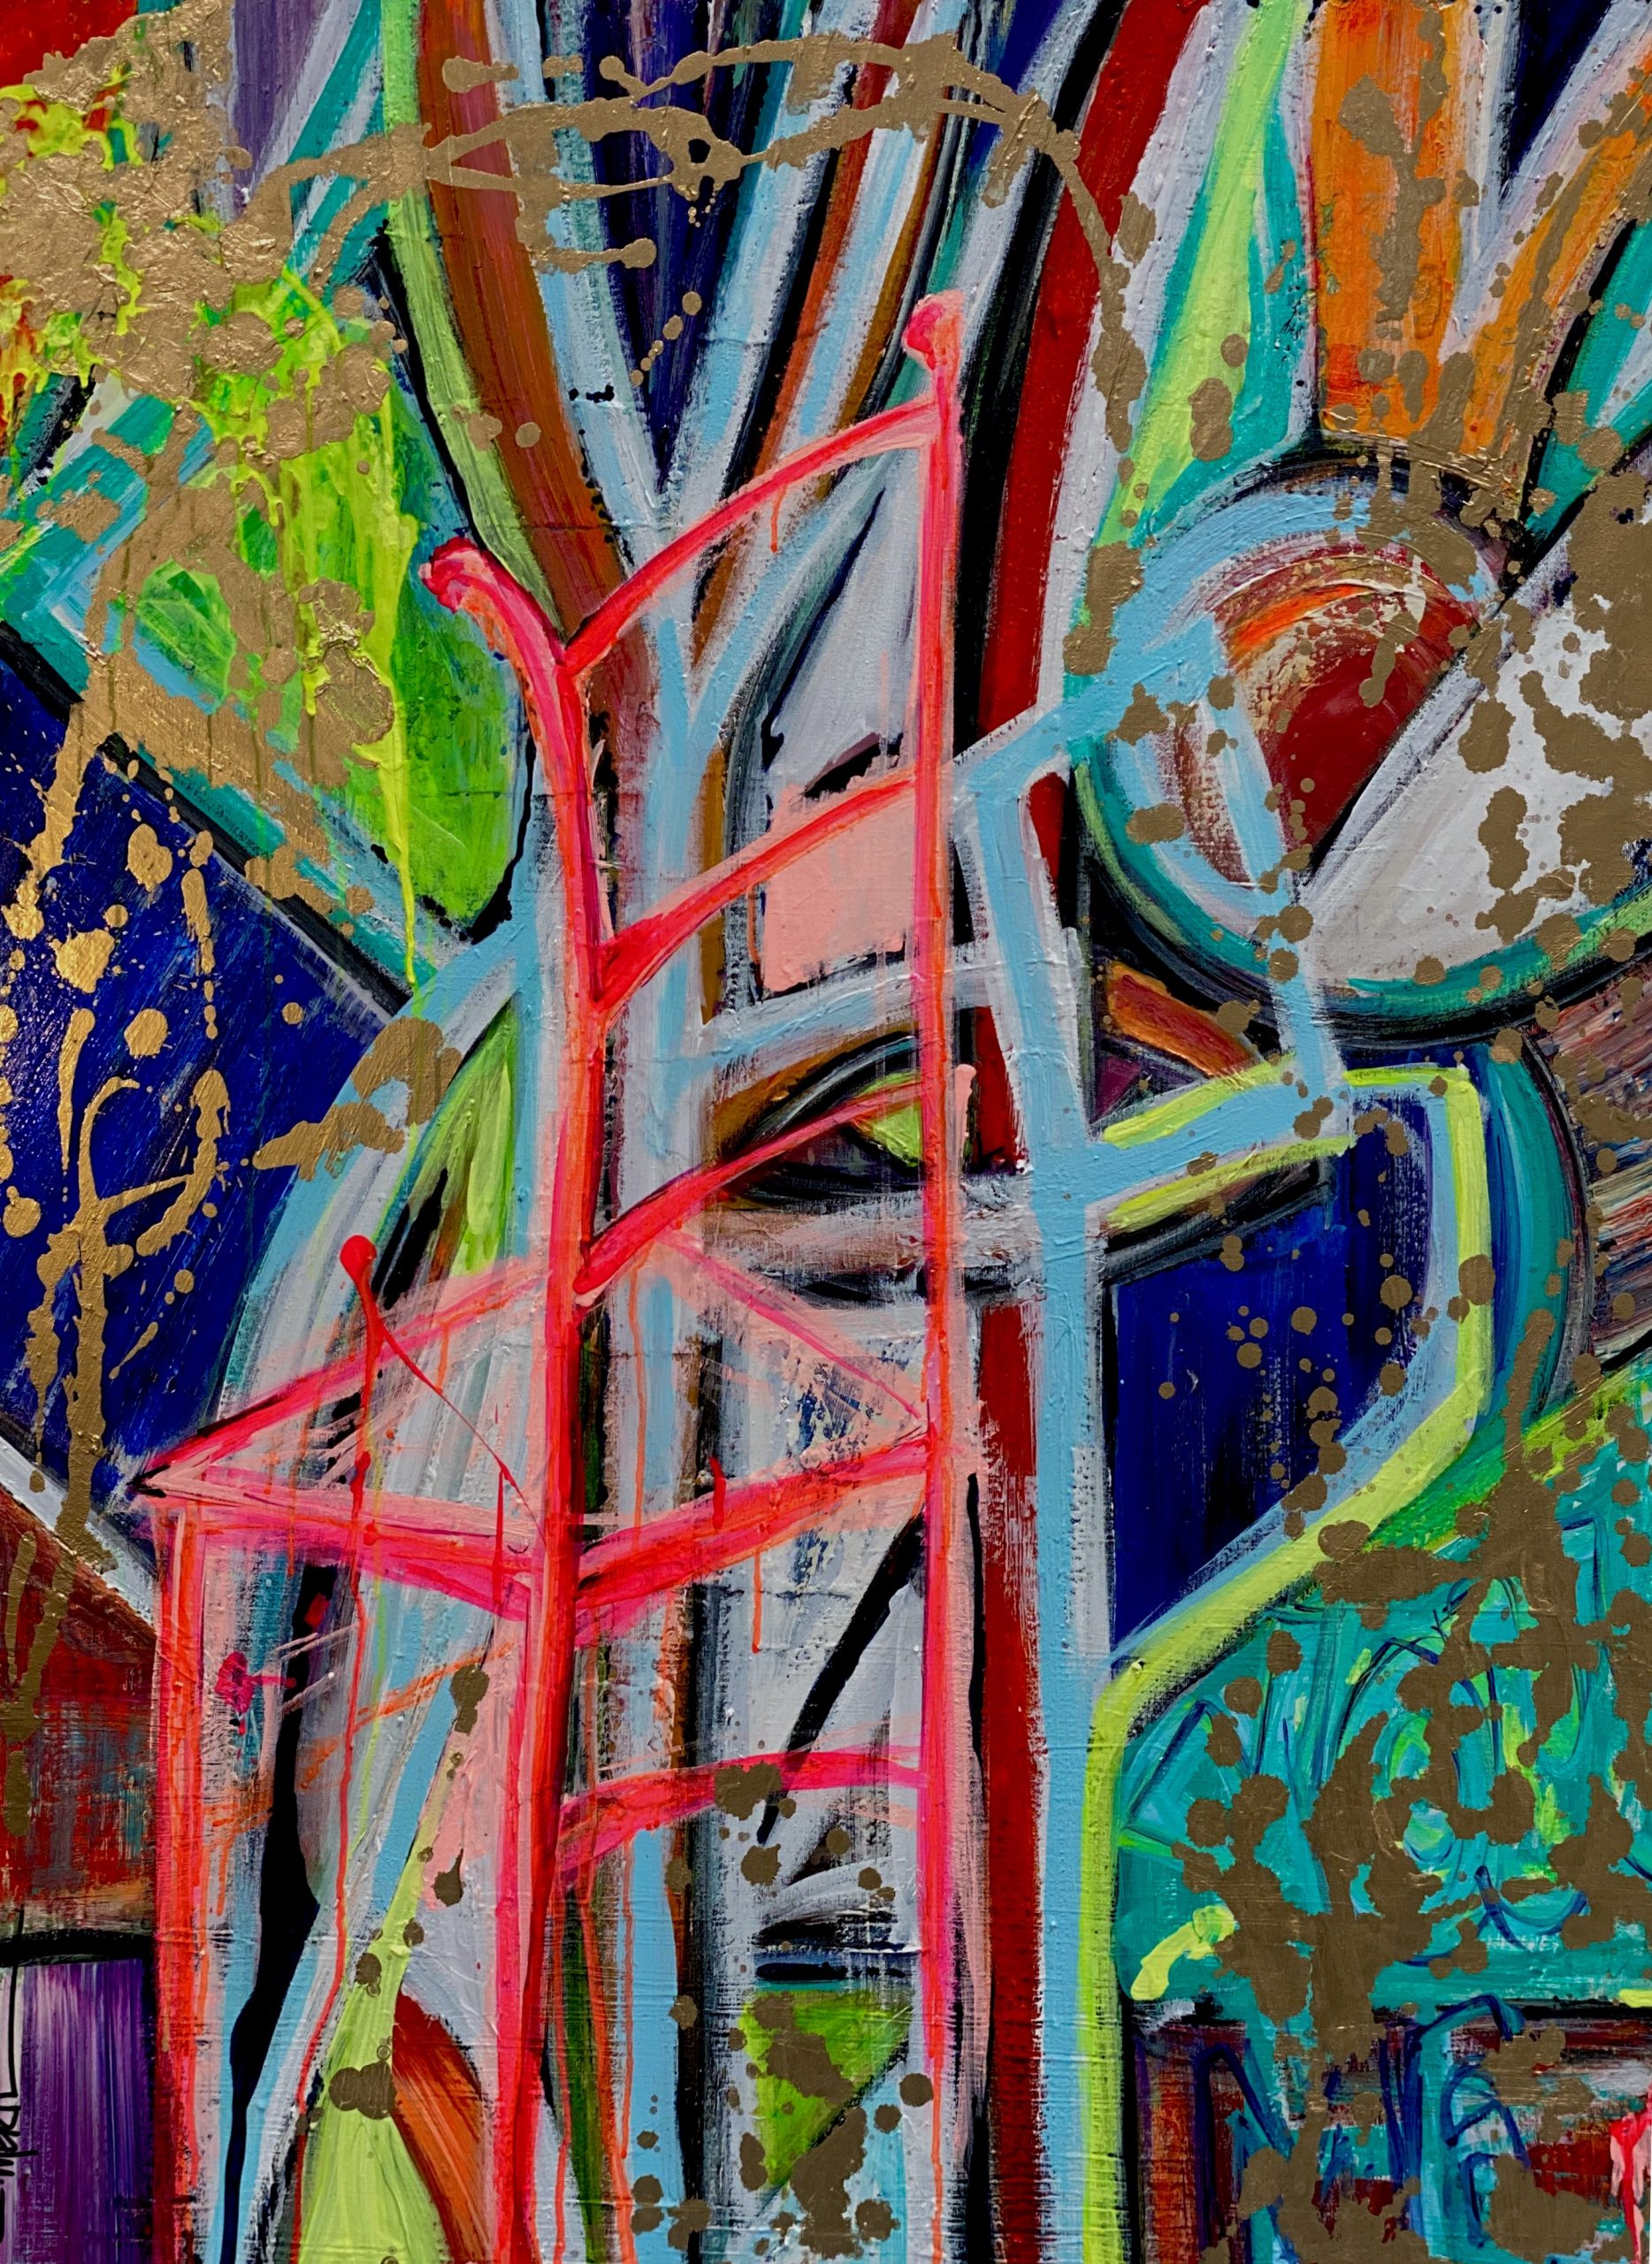 CHRISTI MERIL ART-THIS ONE'S DEDICATED TO YOU-DALLAS ABSTRACT EXPRESSIONIST-DALLAS ABSTRACT ARTIST-DALLAS CHAIR ART-2